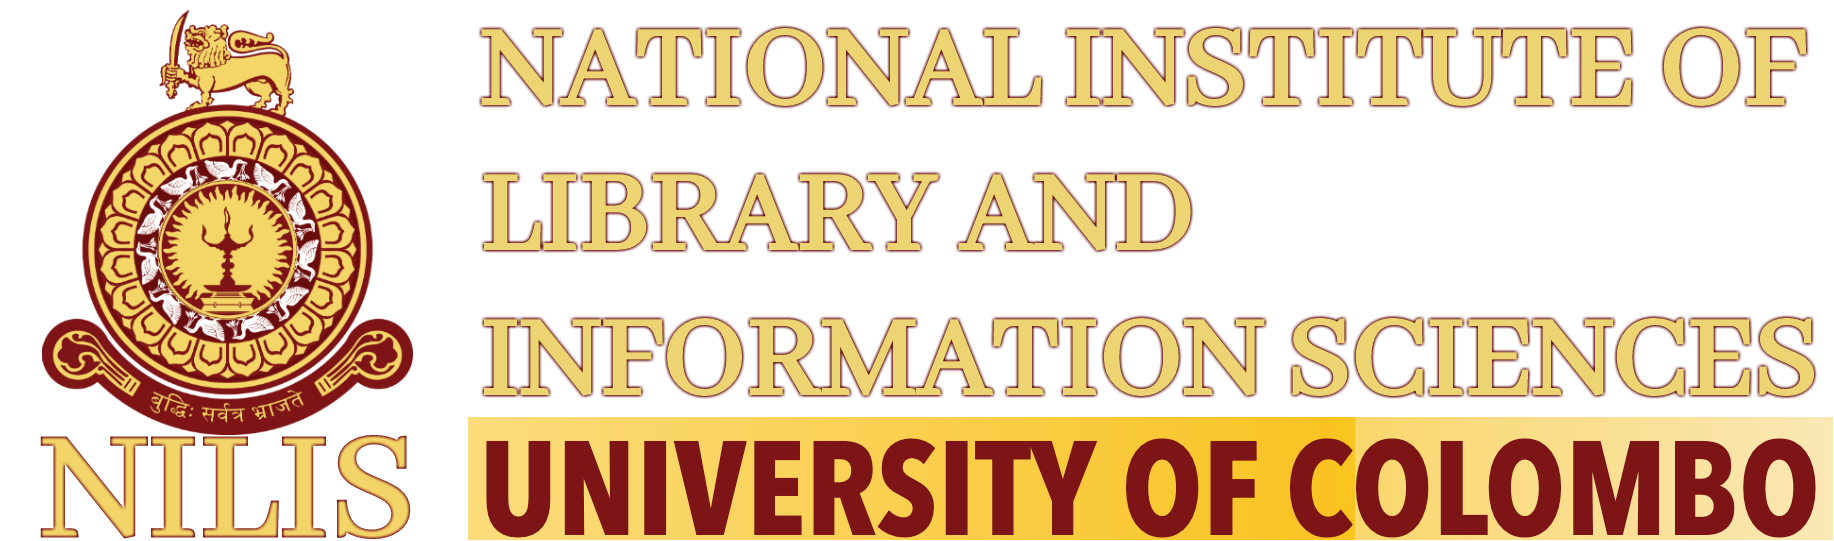 Teacher Librarianship | NILIS, University of Colombo, Sri Lanka